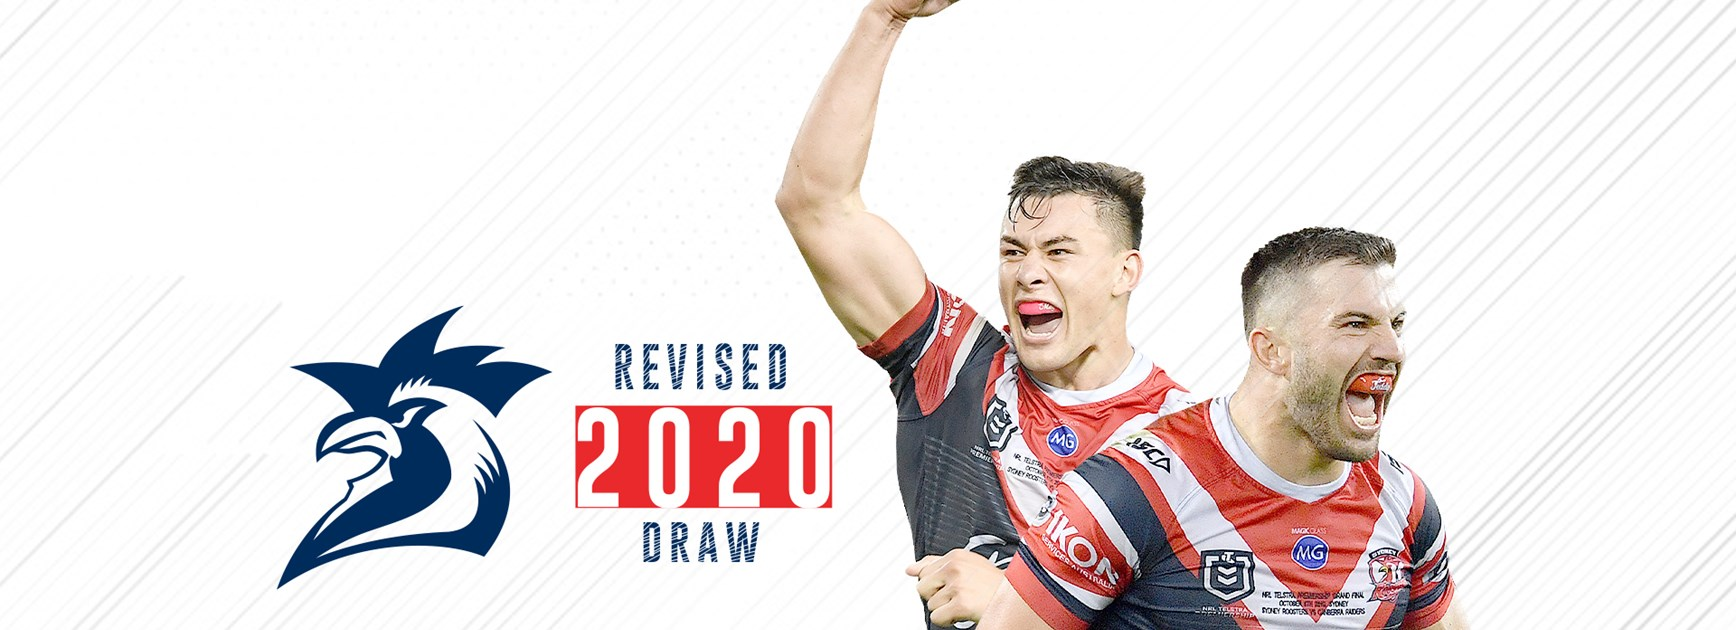 Download 2020 Draw Wallpapers